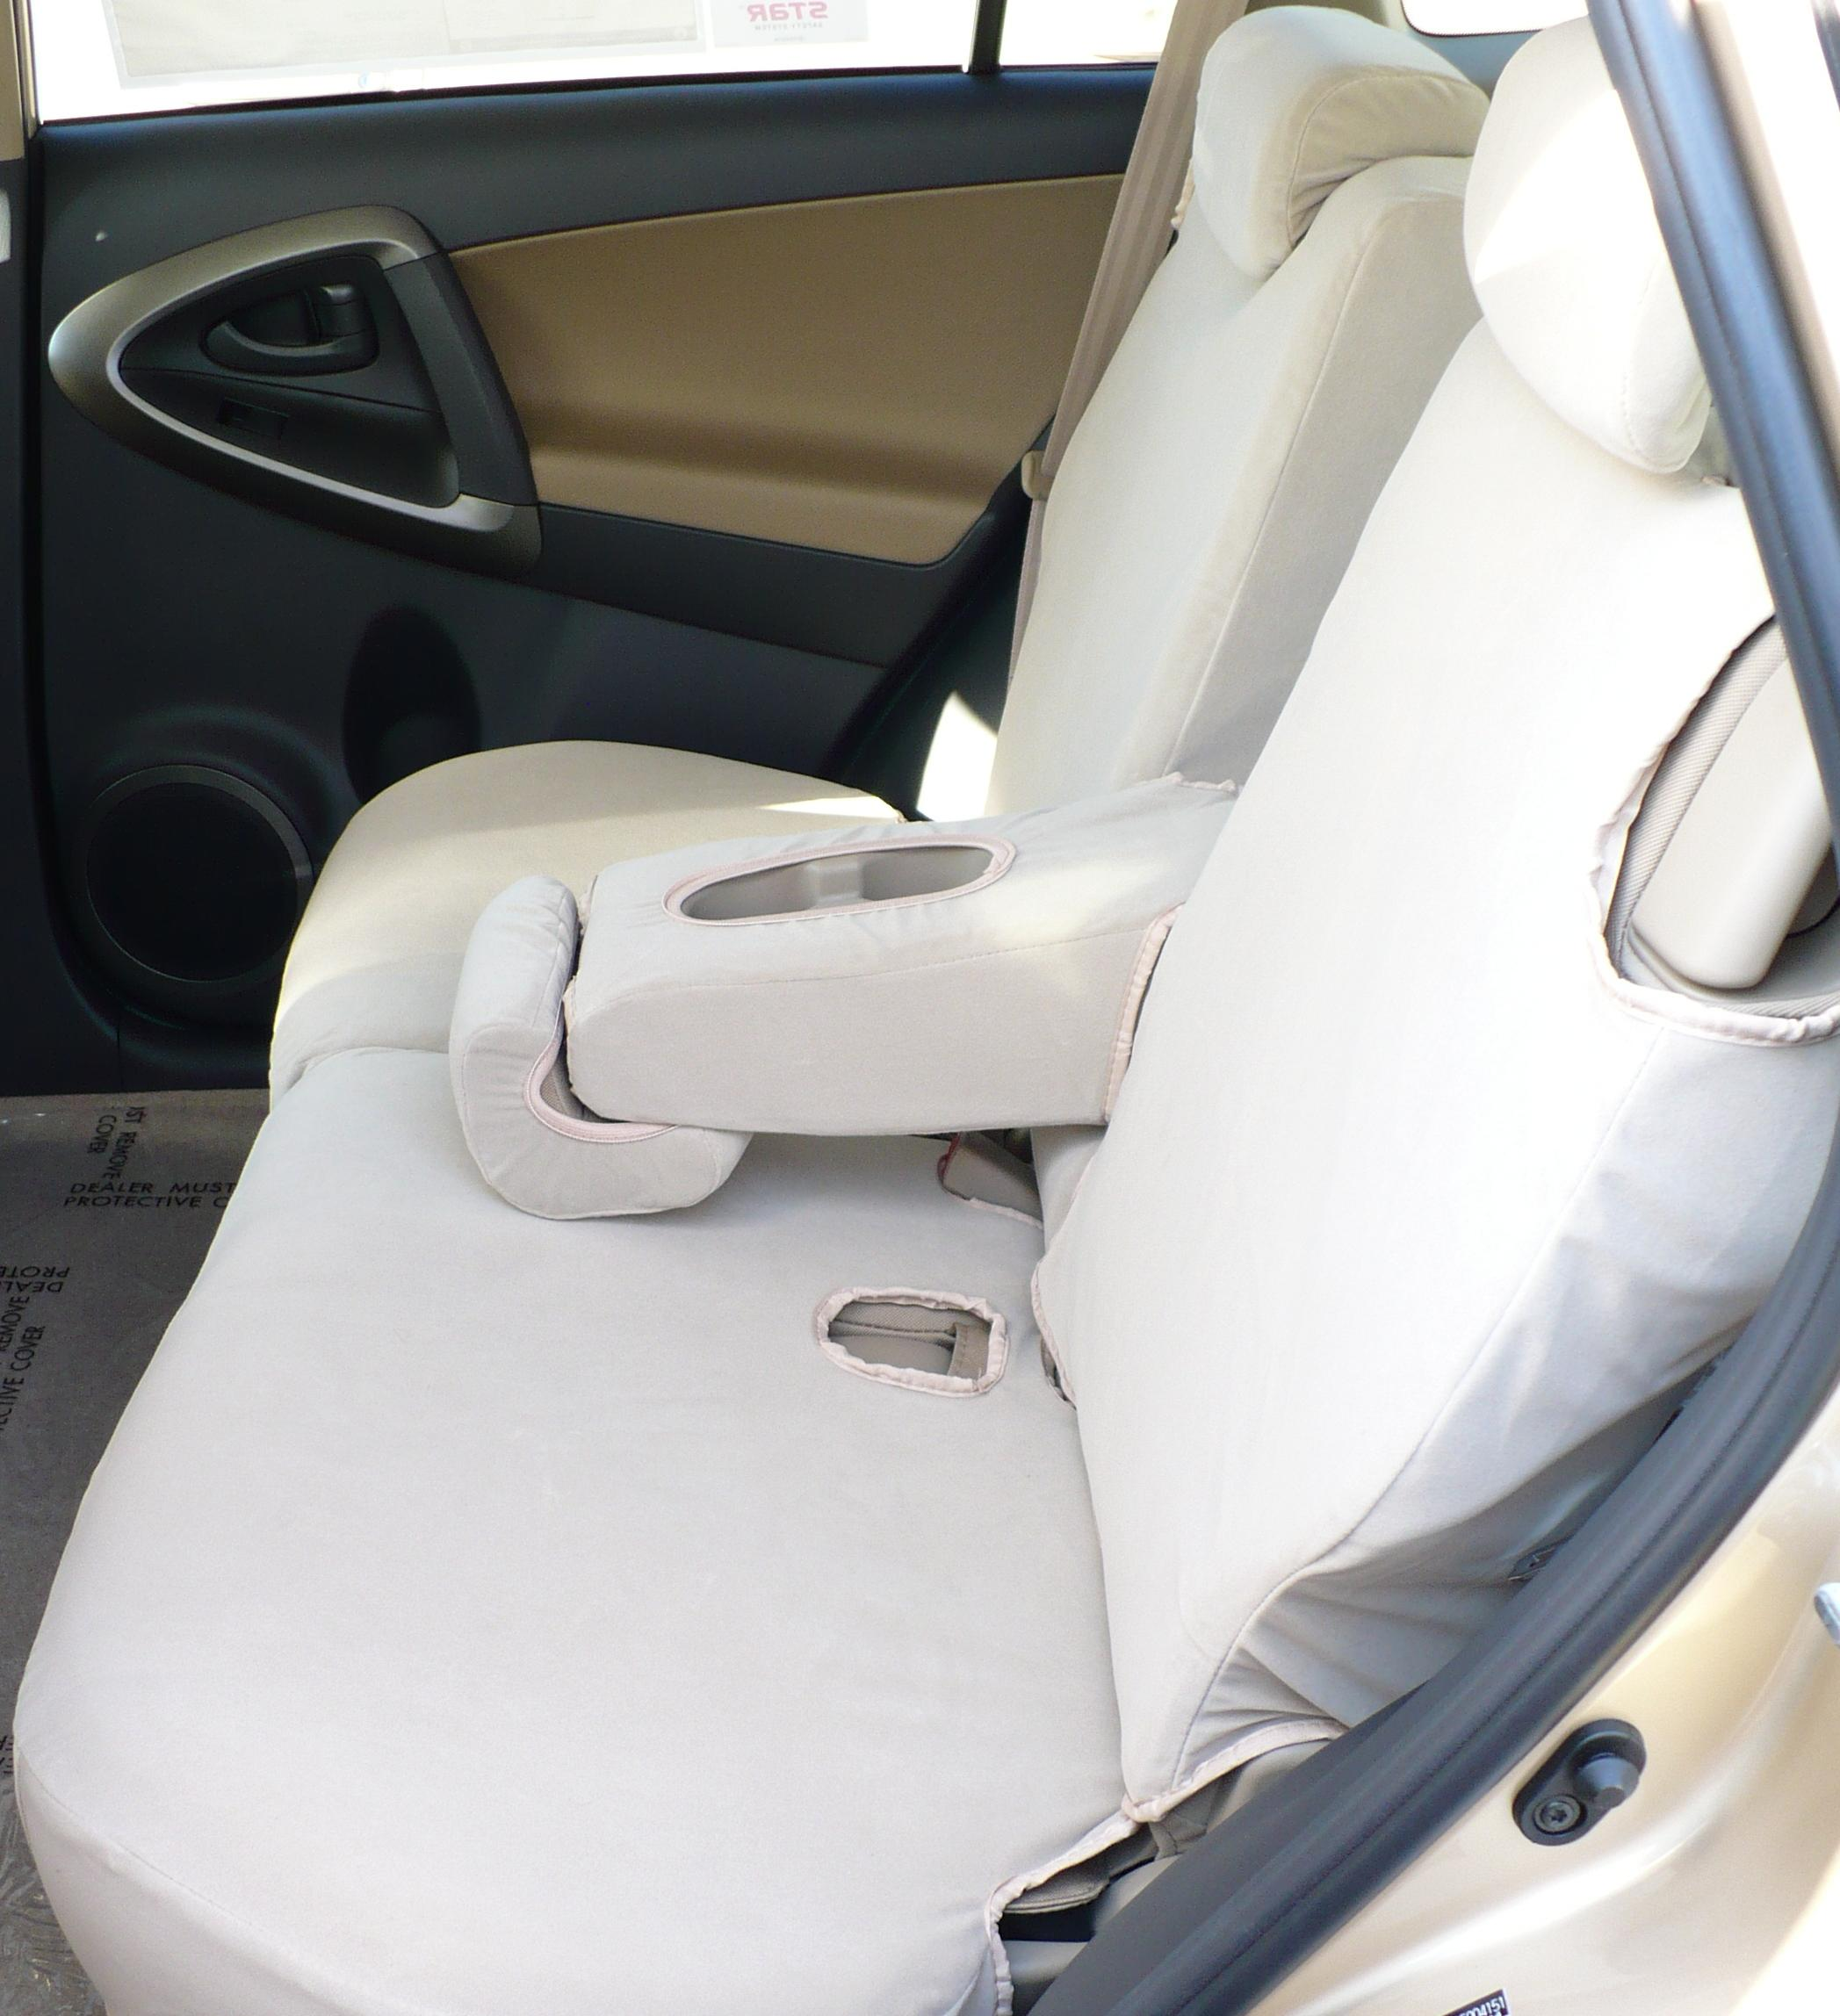 2006 2017 Toyota Rav4 Rear 60 40 Split Seat With Adjule Headrests And Fold Down Armrest